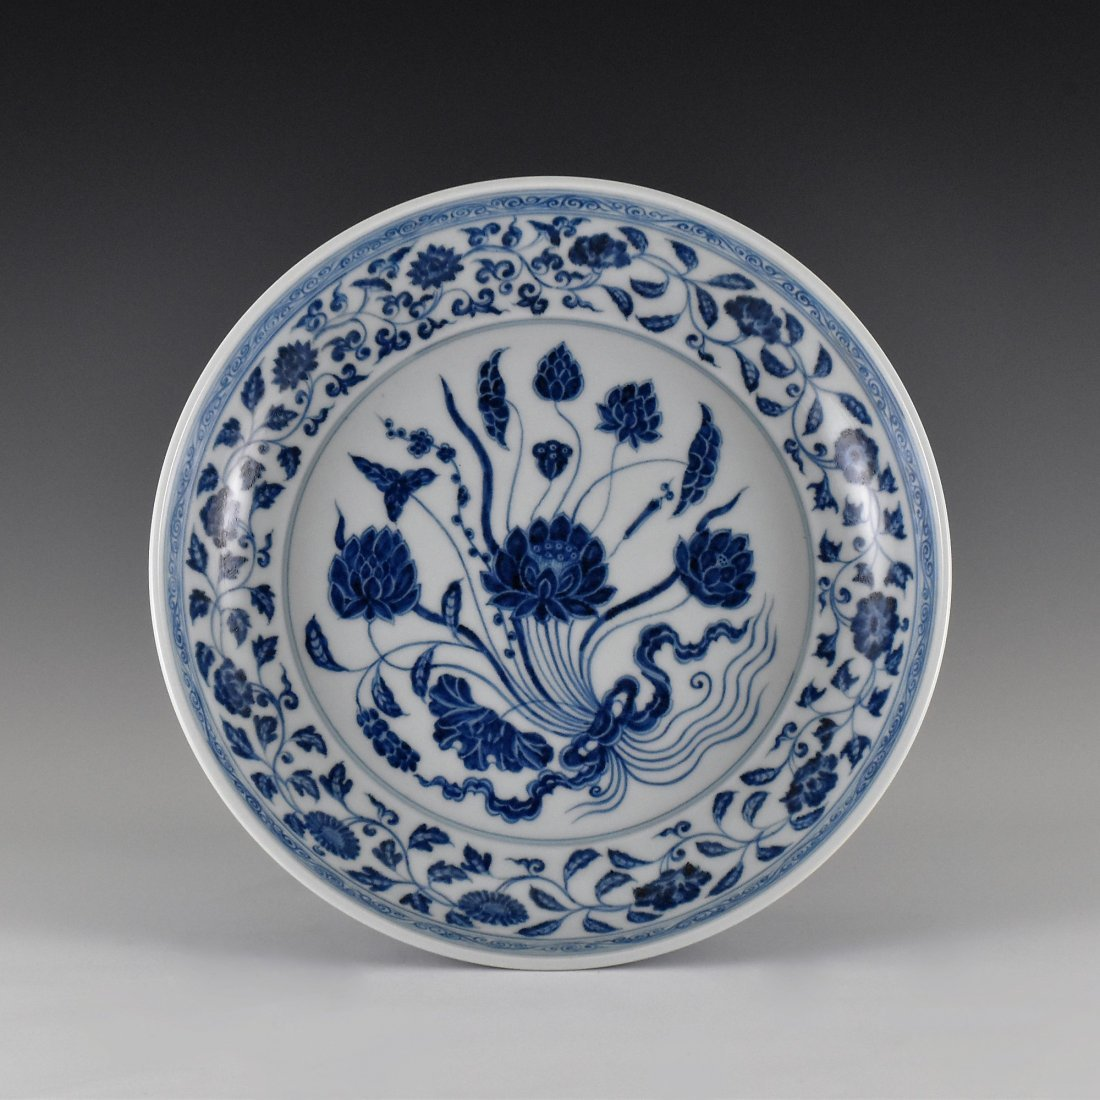 A MAGNIFICENT CHINESE MING BLUE AND WHITE LOTUS PLATE